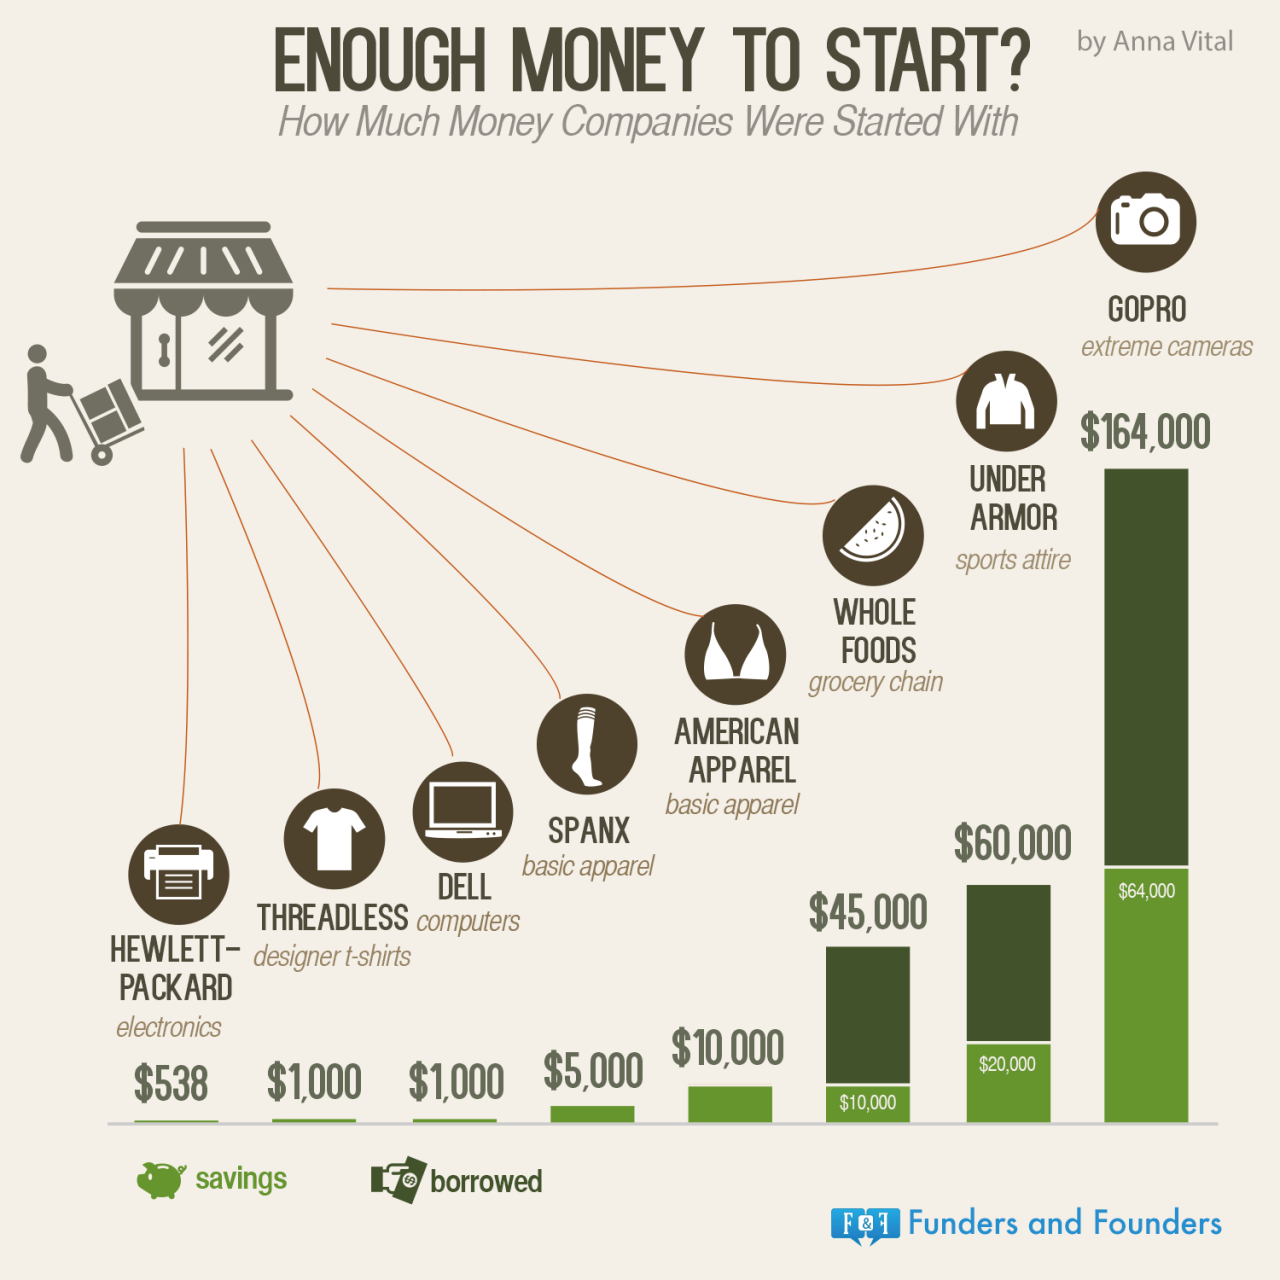 https://blog.adioma.com/wp-content/uploads/2015/04/enough-money-to-start-infographic.png